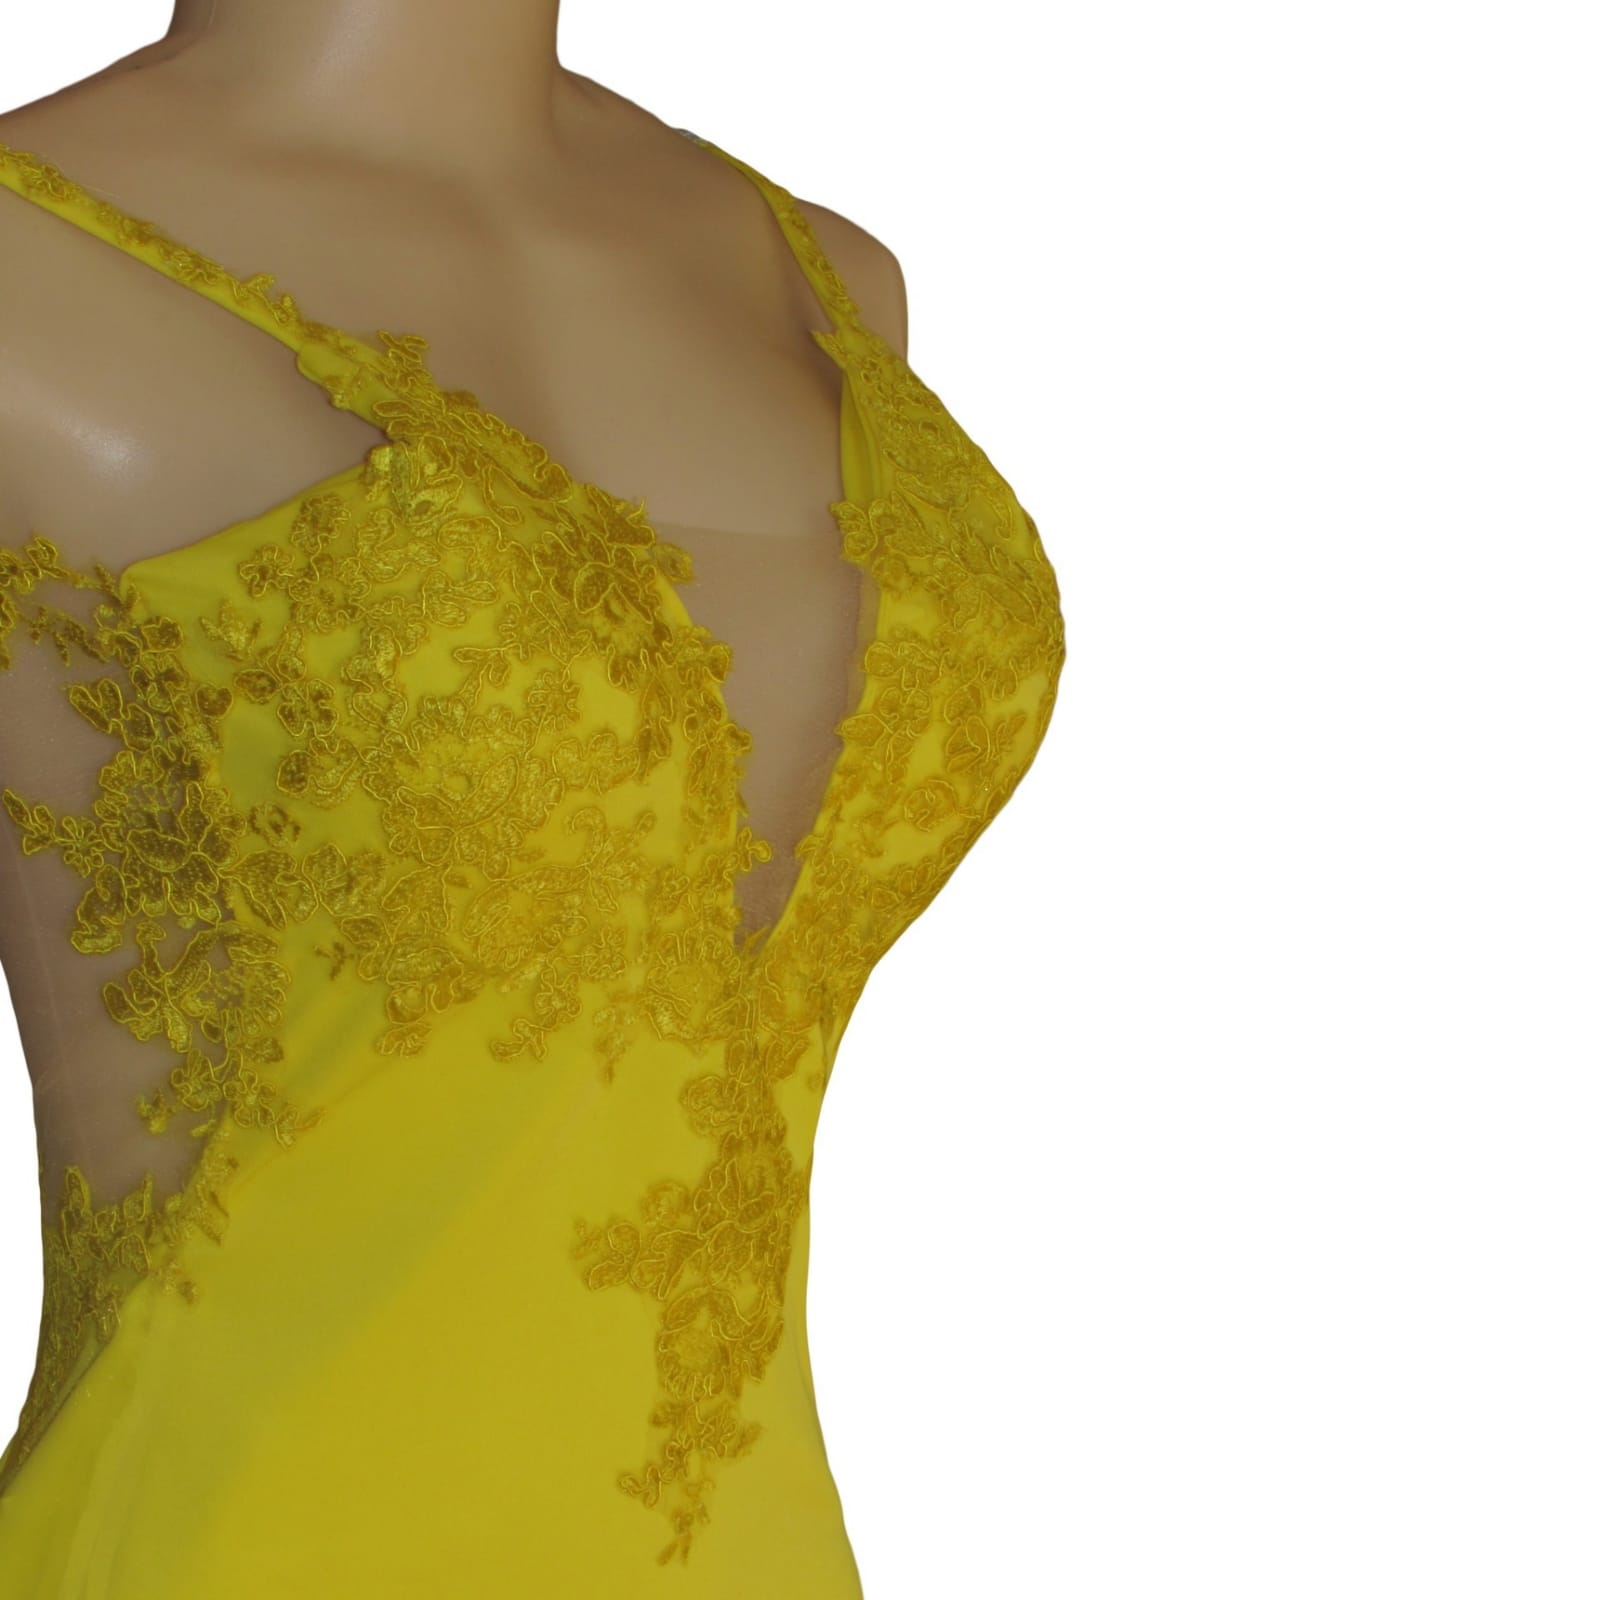 Canary yellow lace soft mermaid prom dress 3 canary yellow, lace, soft mermaid prom dance dress with sheer legs, detailed with lace. With an illusion open back.